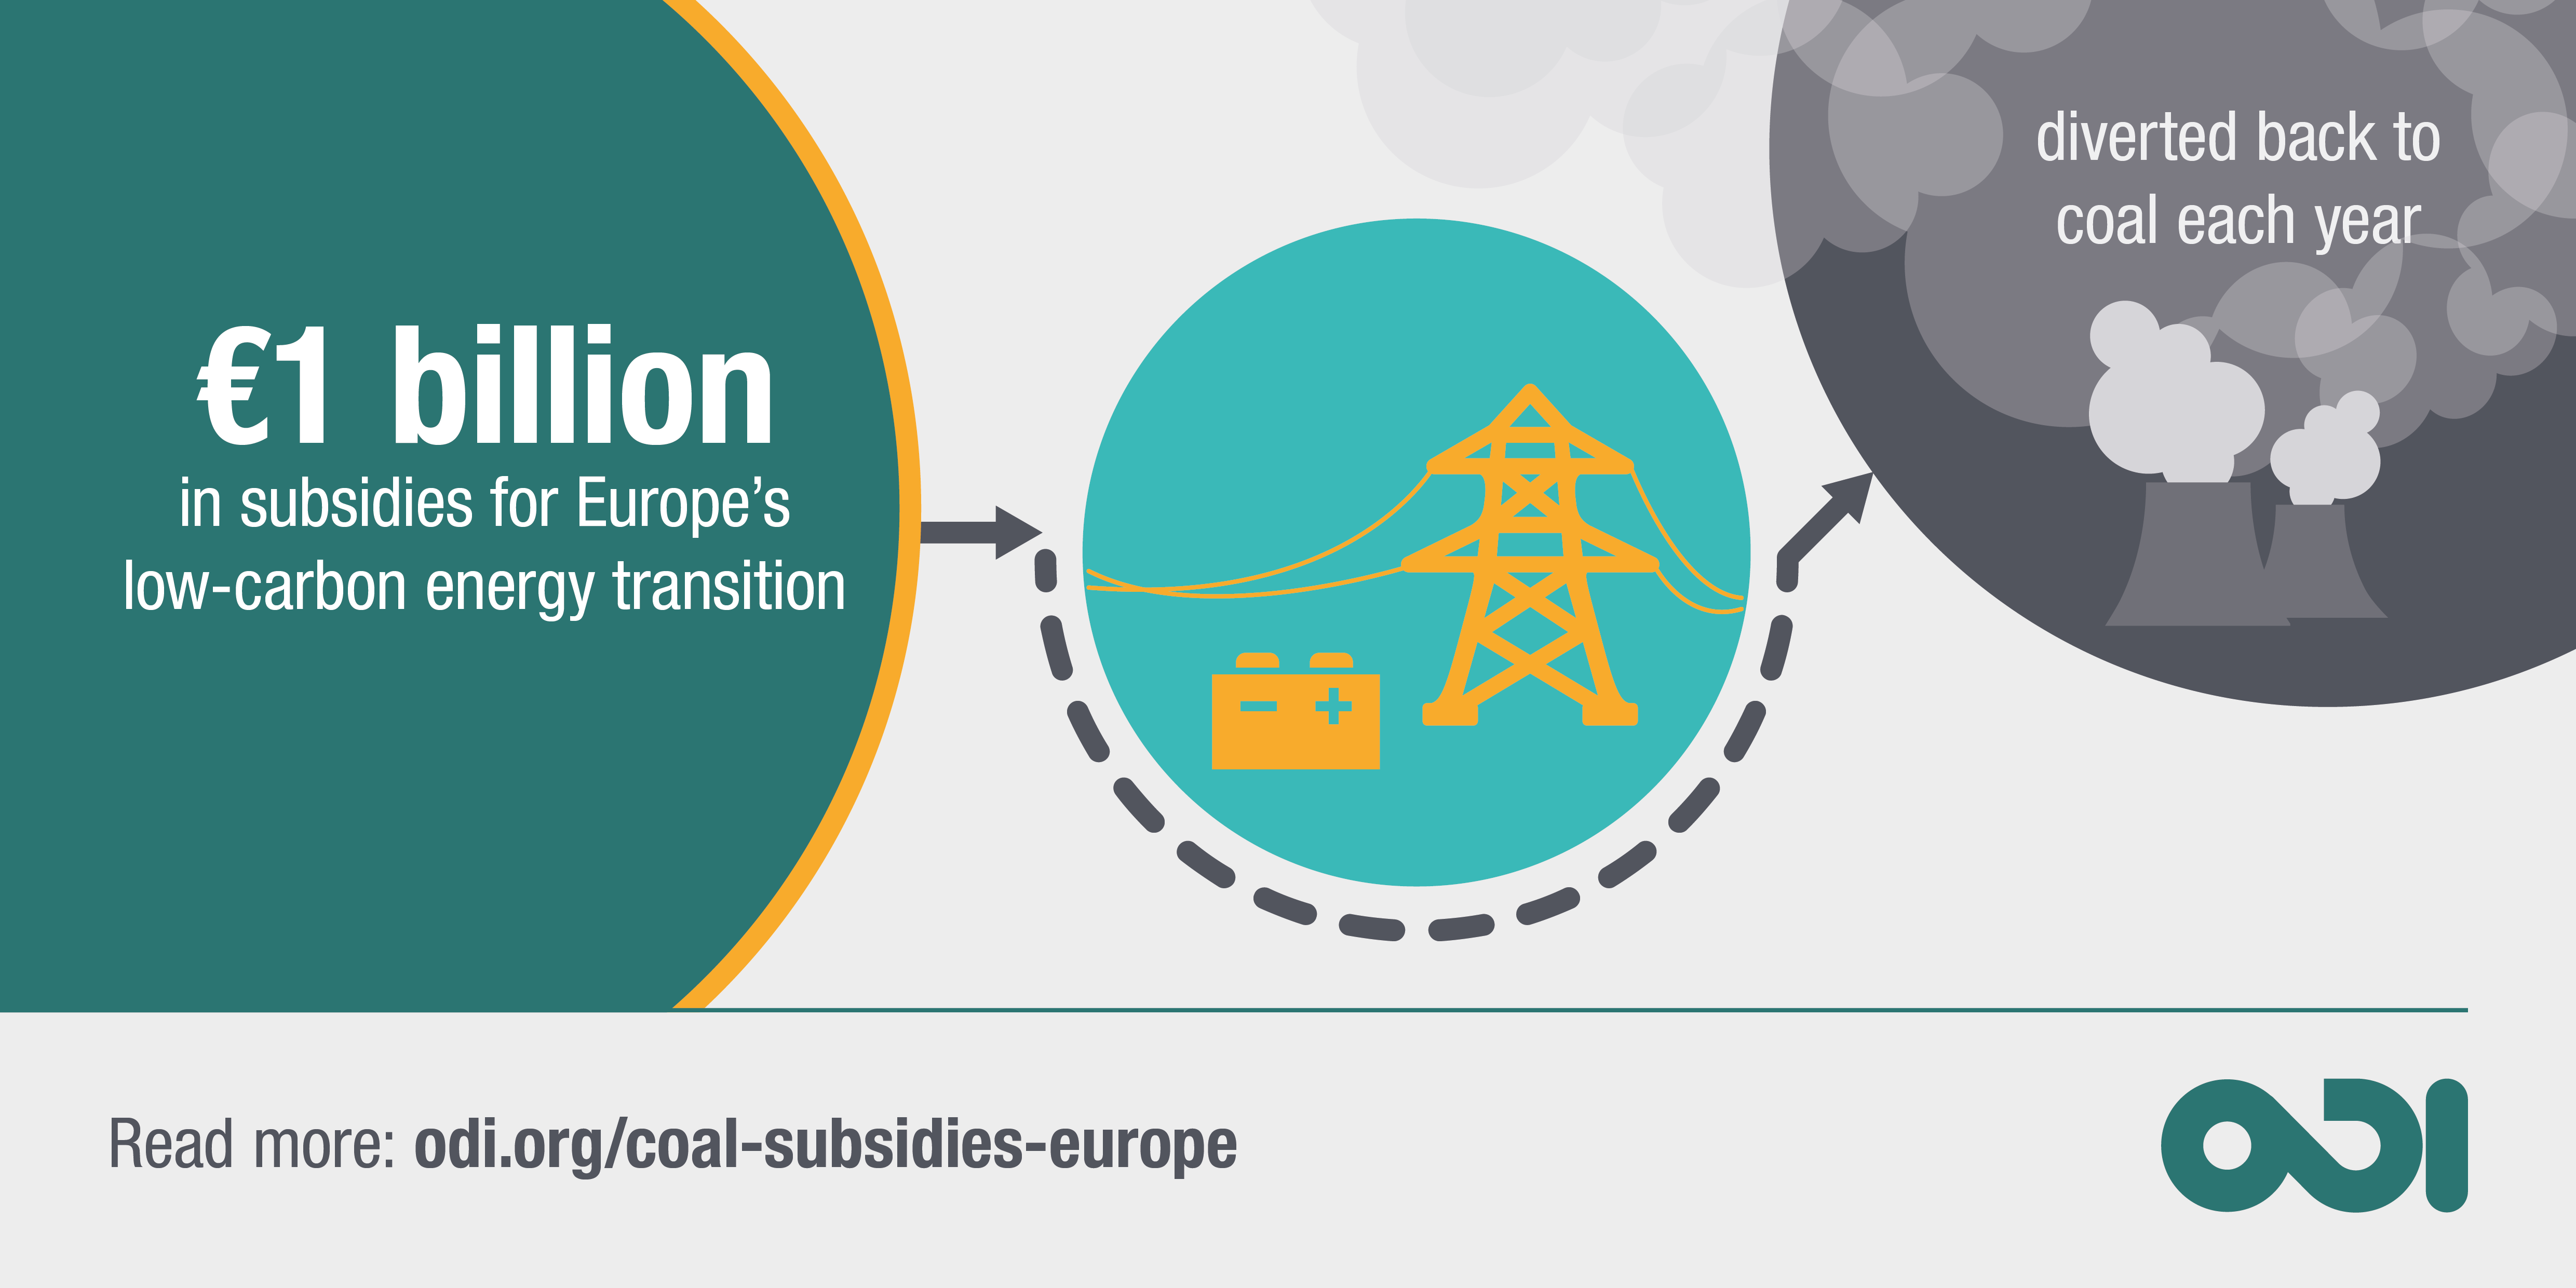 Infographic: energy transition subsidies directed back to coal in Europe